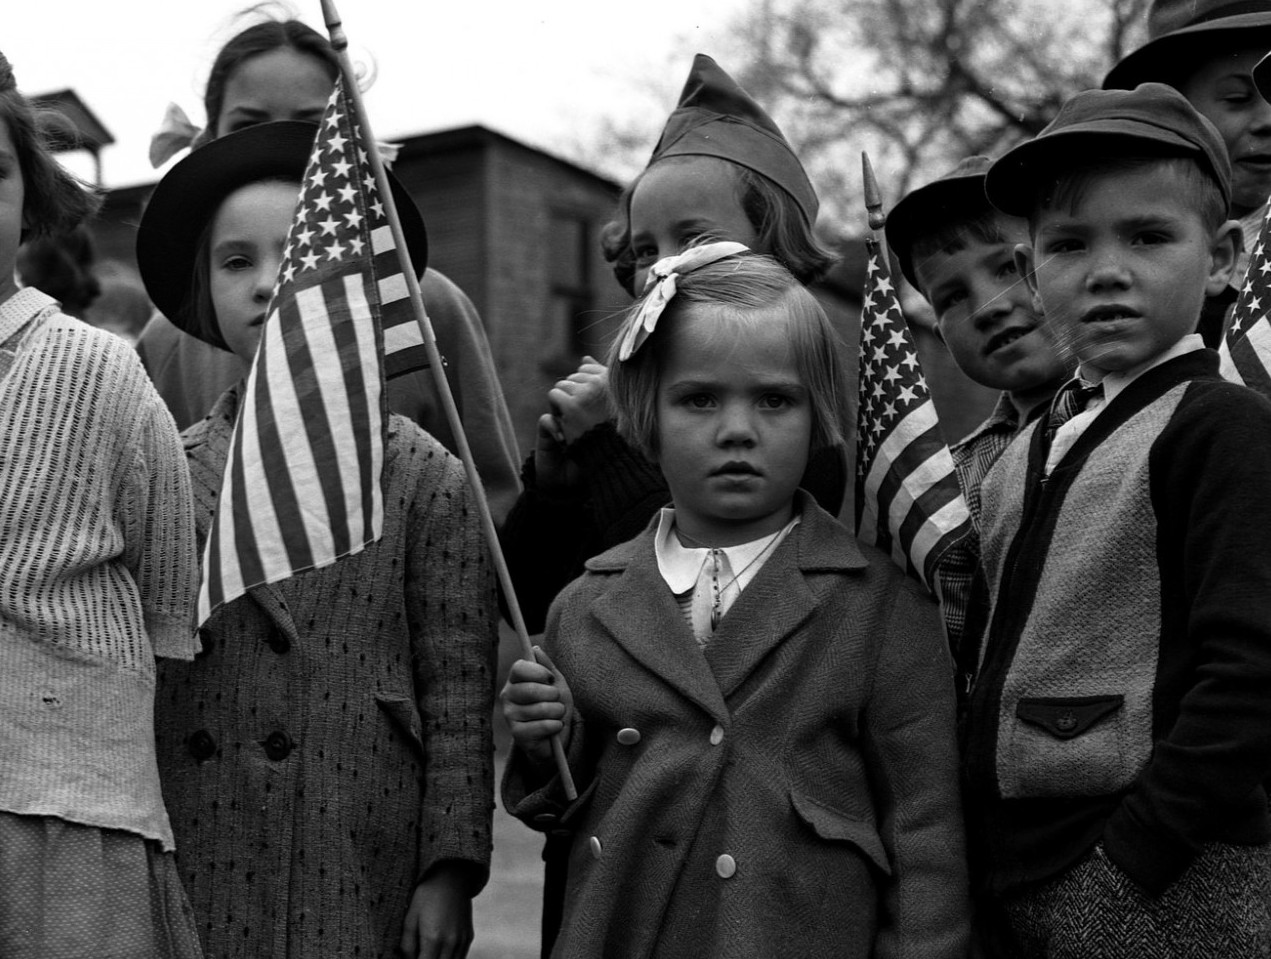 Children on Memorial Day, 1943. Source: Flickr, Public Domain